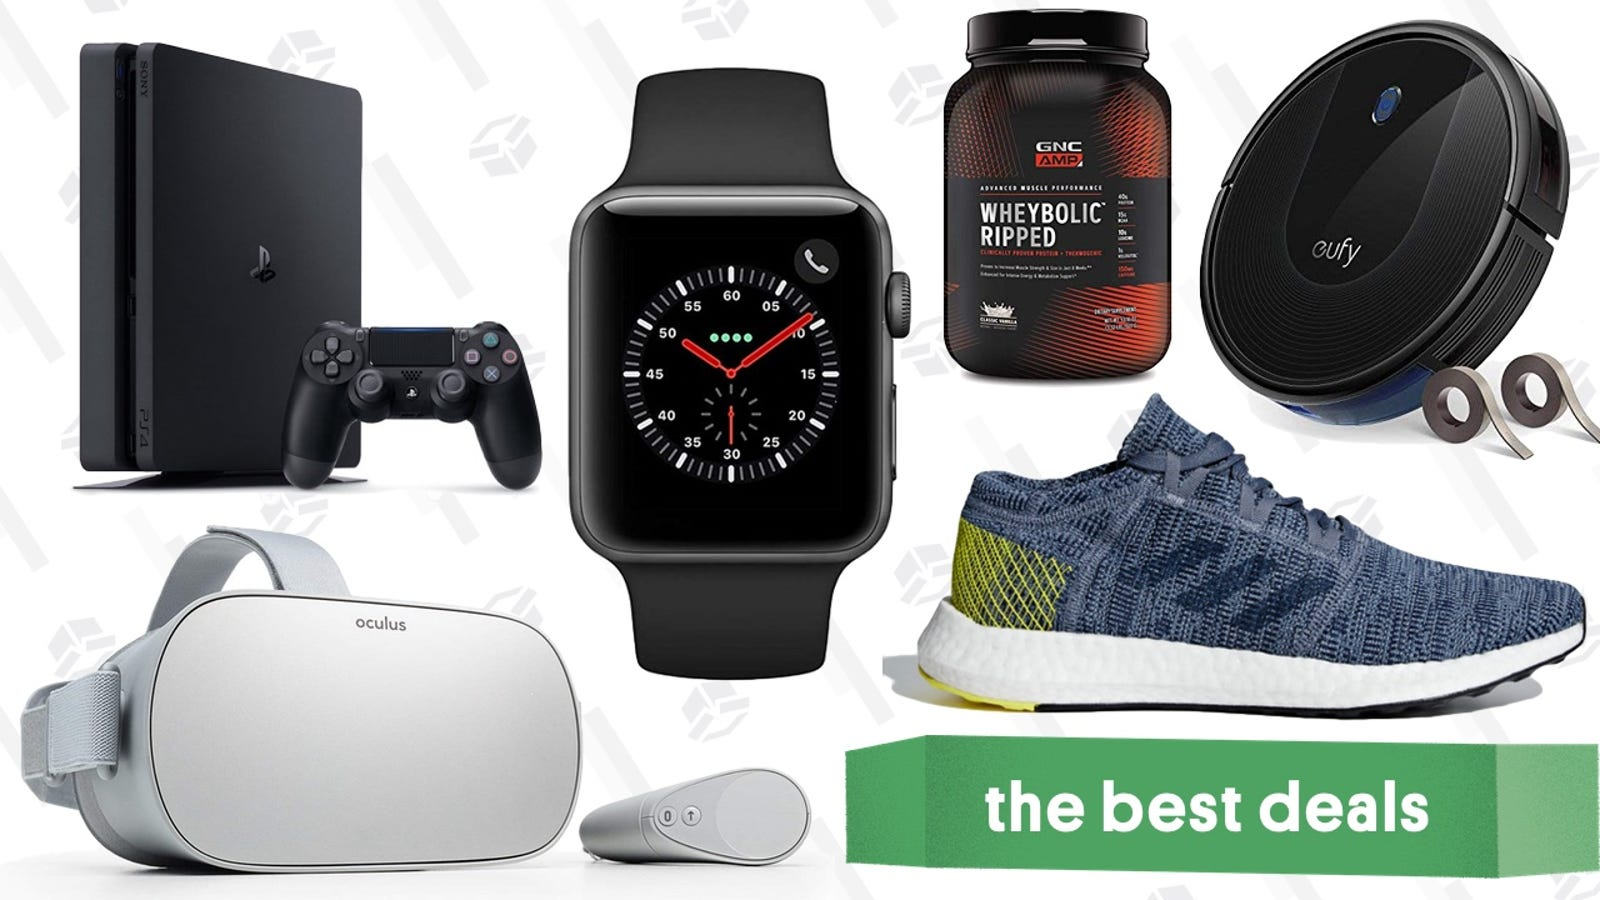 Saturday's Best Deals: Not (Just) Black Friday Leftovers